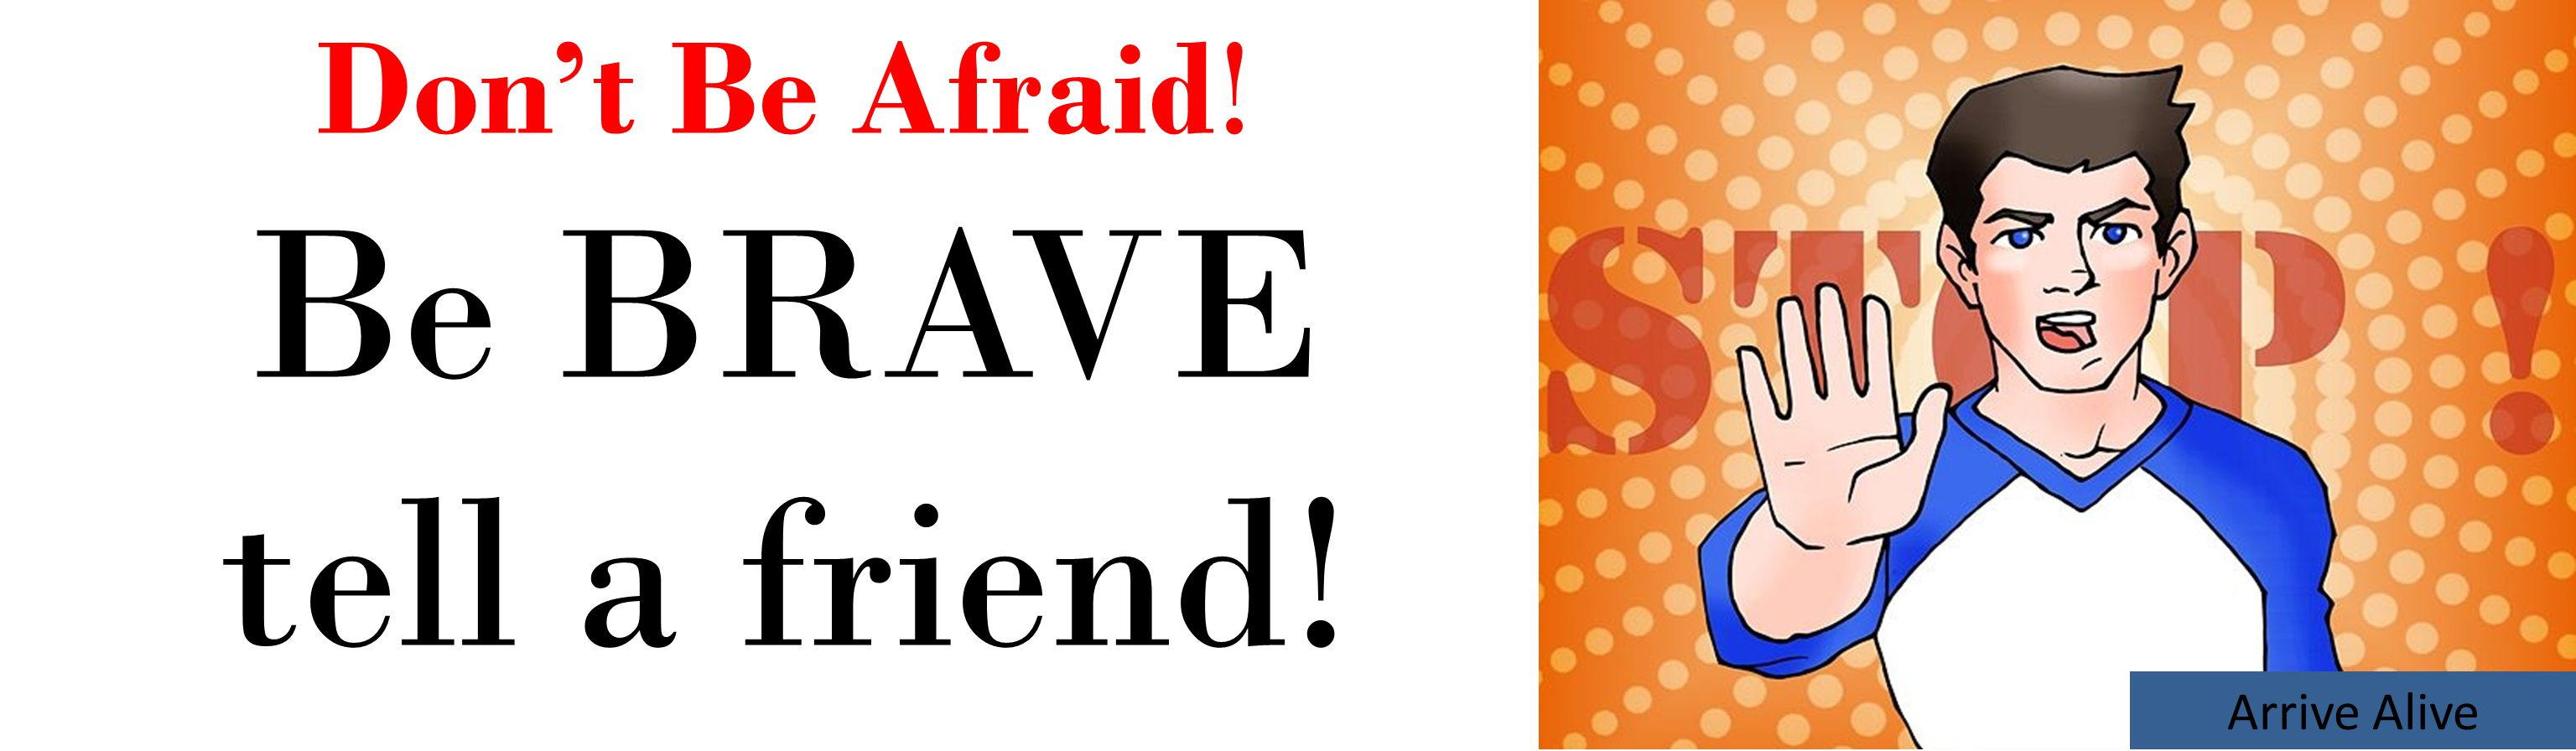 Arrive Alive Don't Be Afraid! Be BRAVE tell a friend!